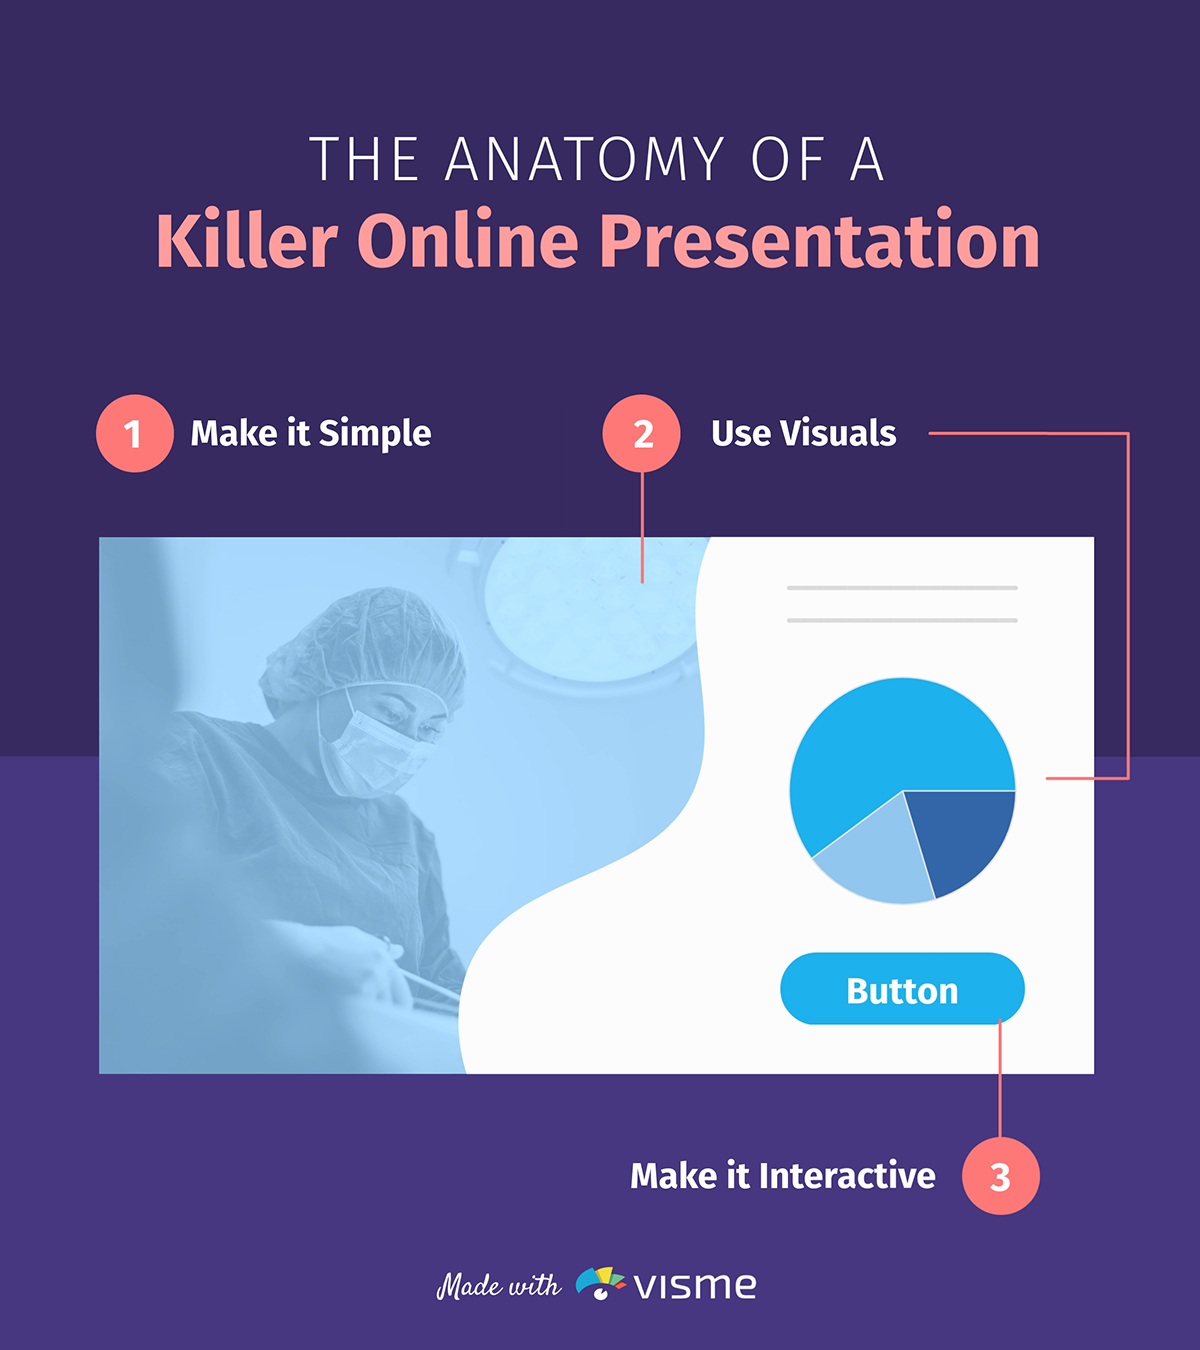 zoom presentation - The-Anatomy-of-a-Killer-Online-Presentation-Infographic_full